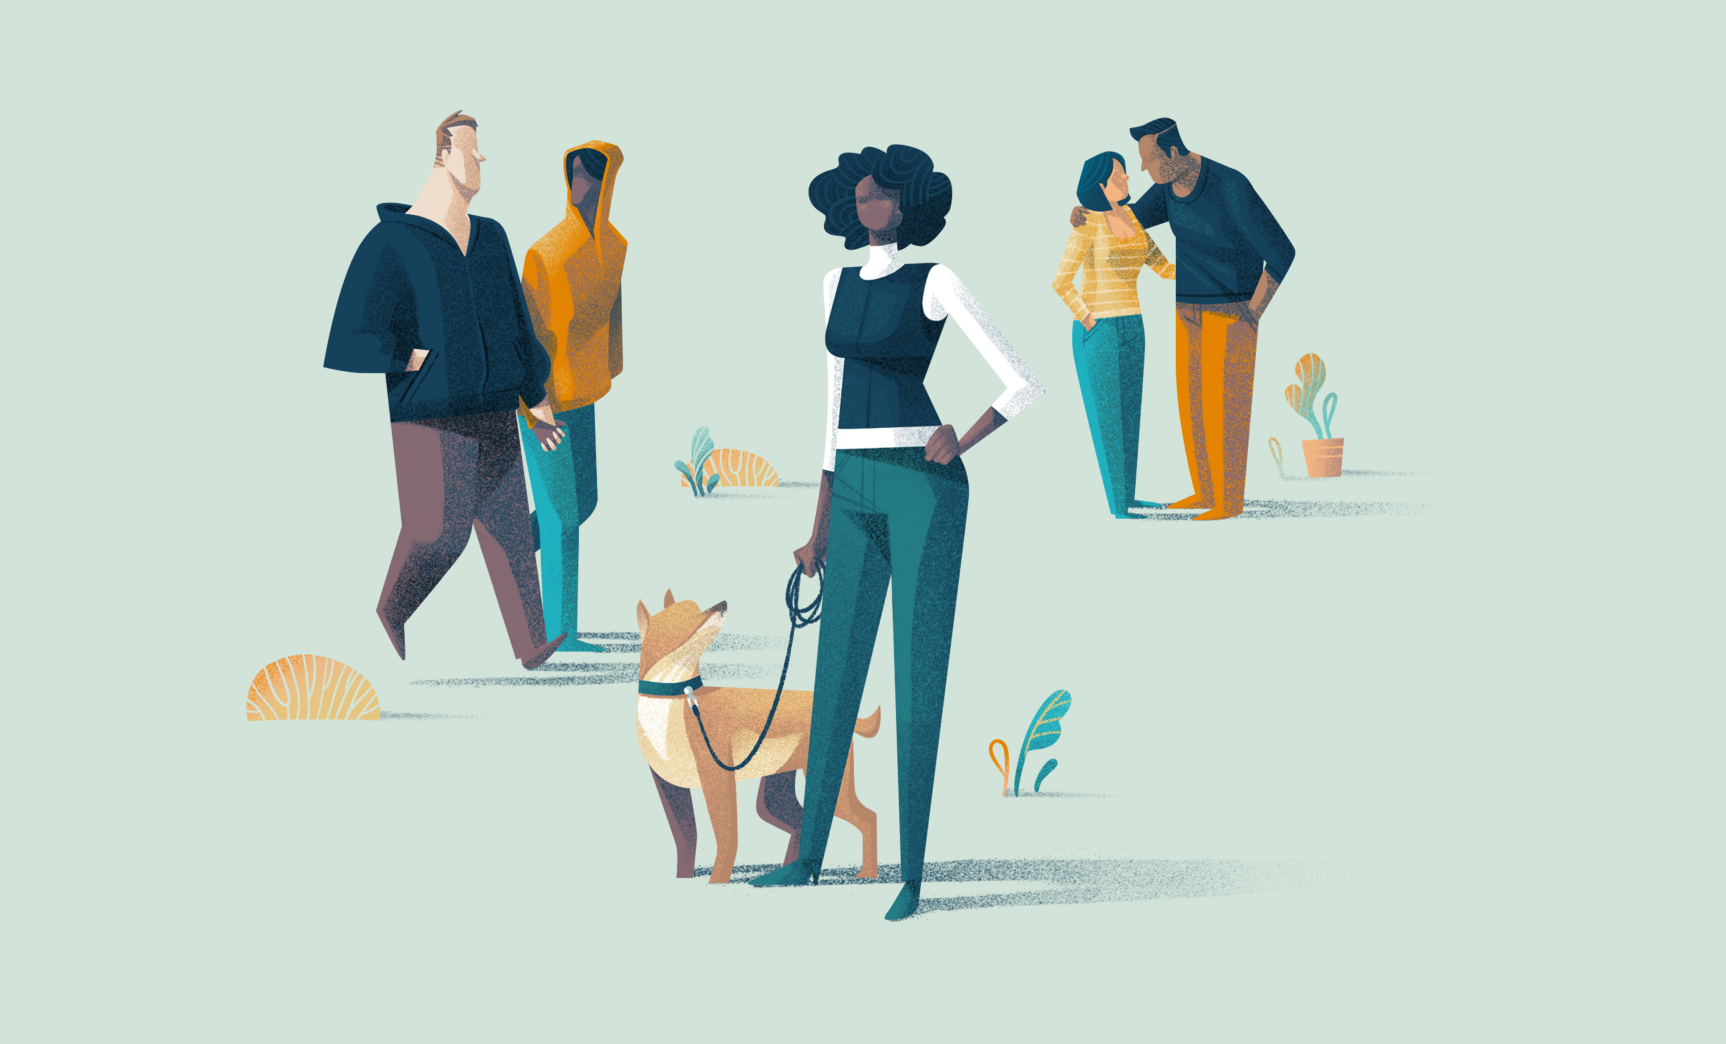 An illustration of a person standing with a dog to indicate starting an egg donor search